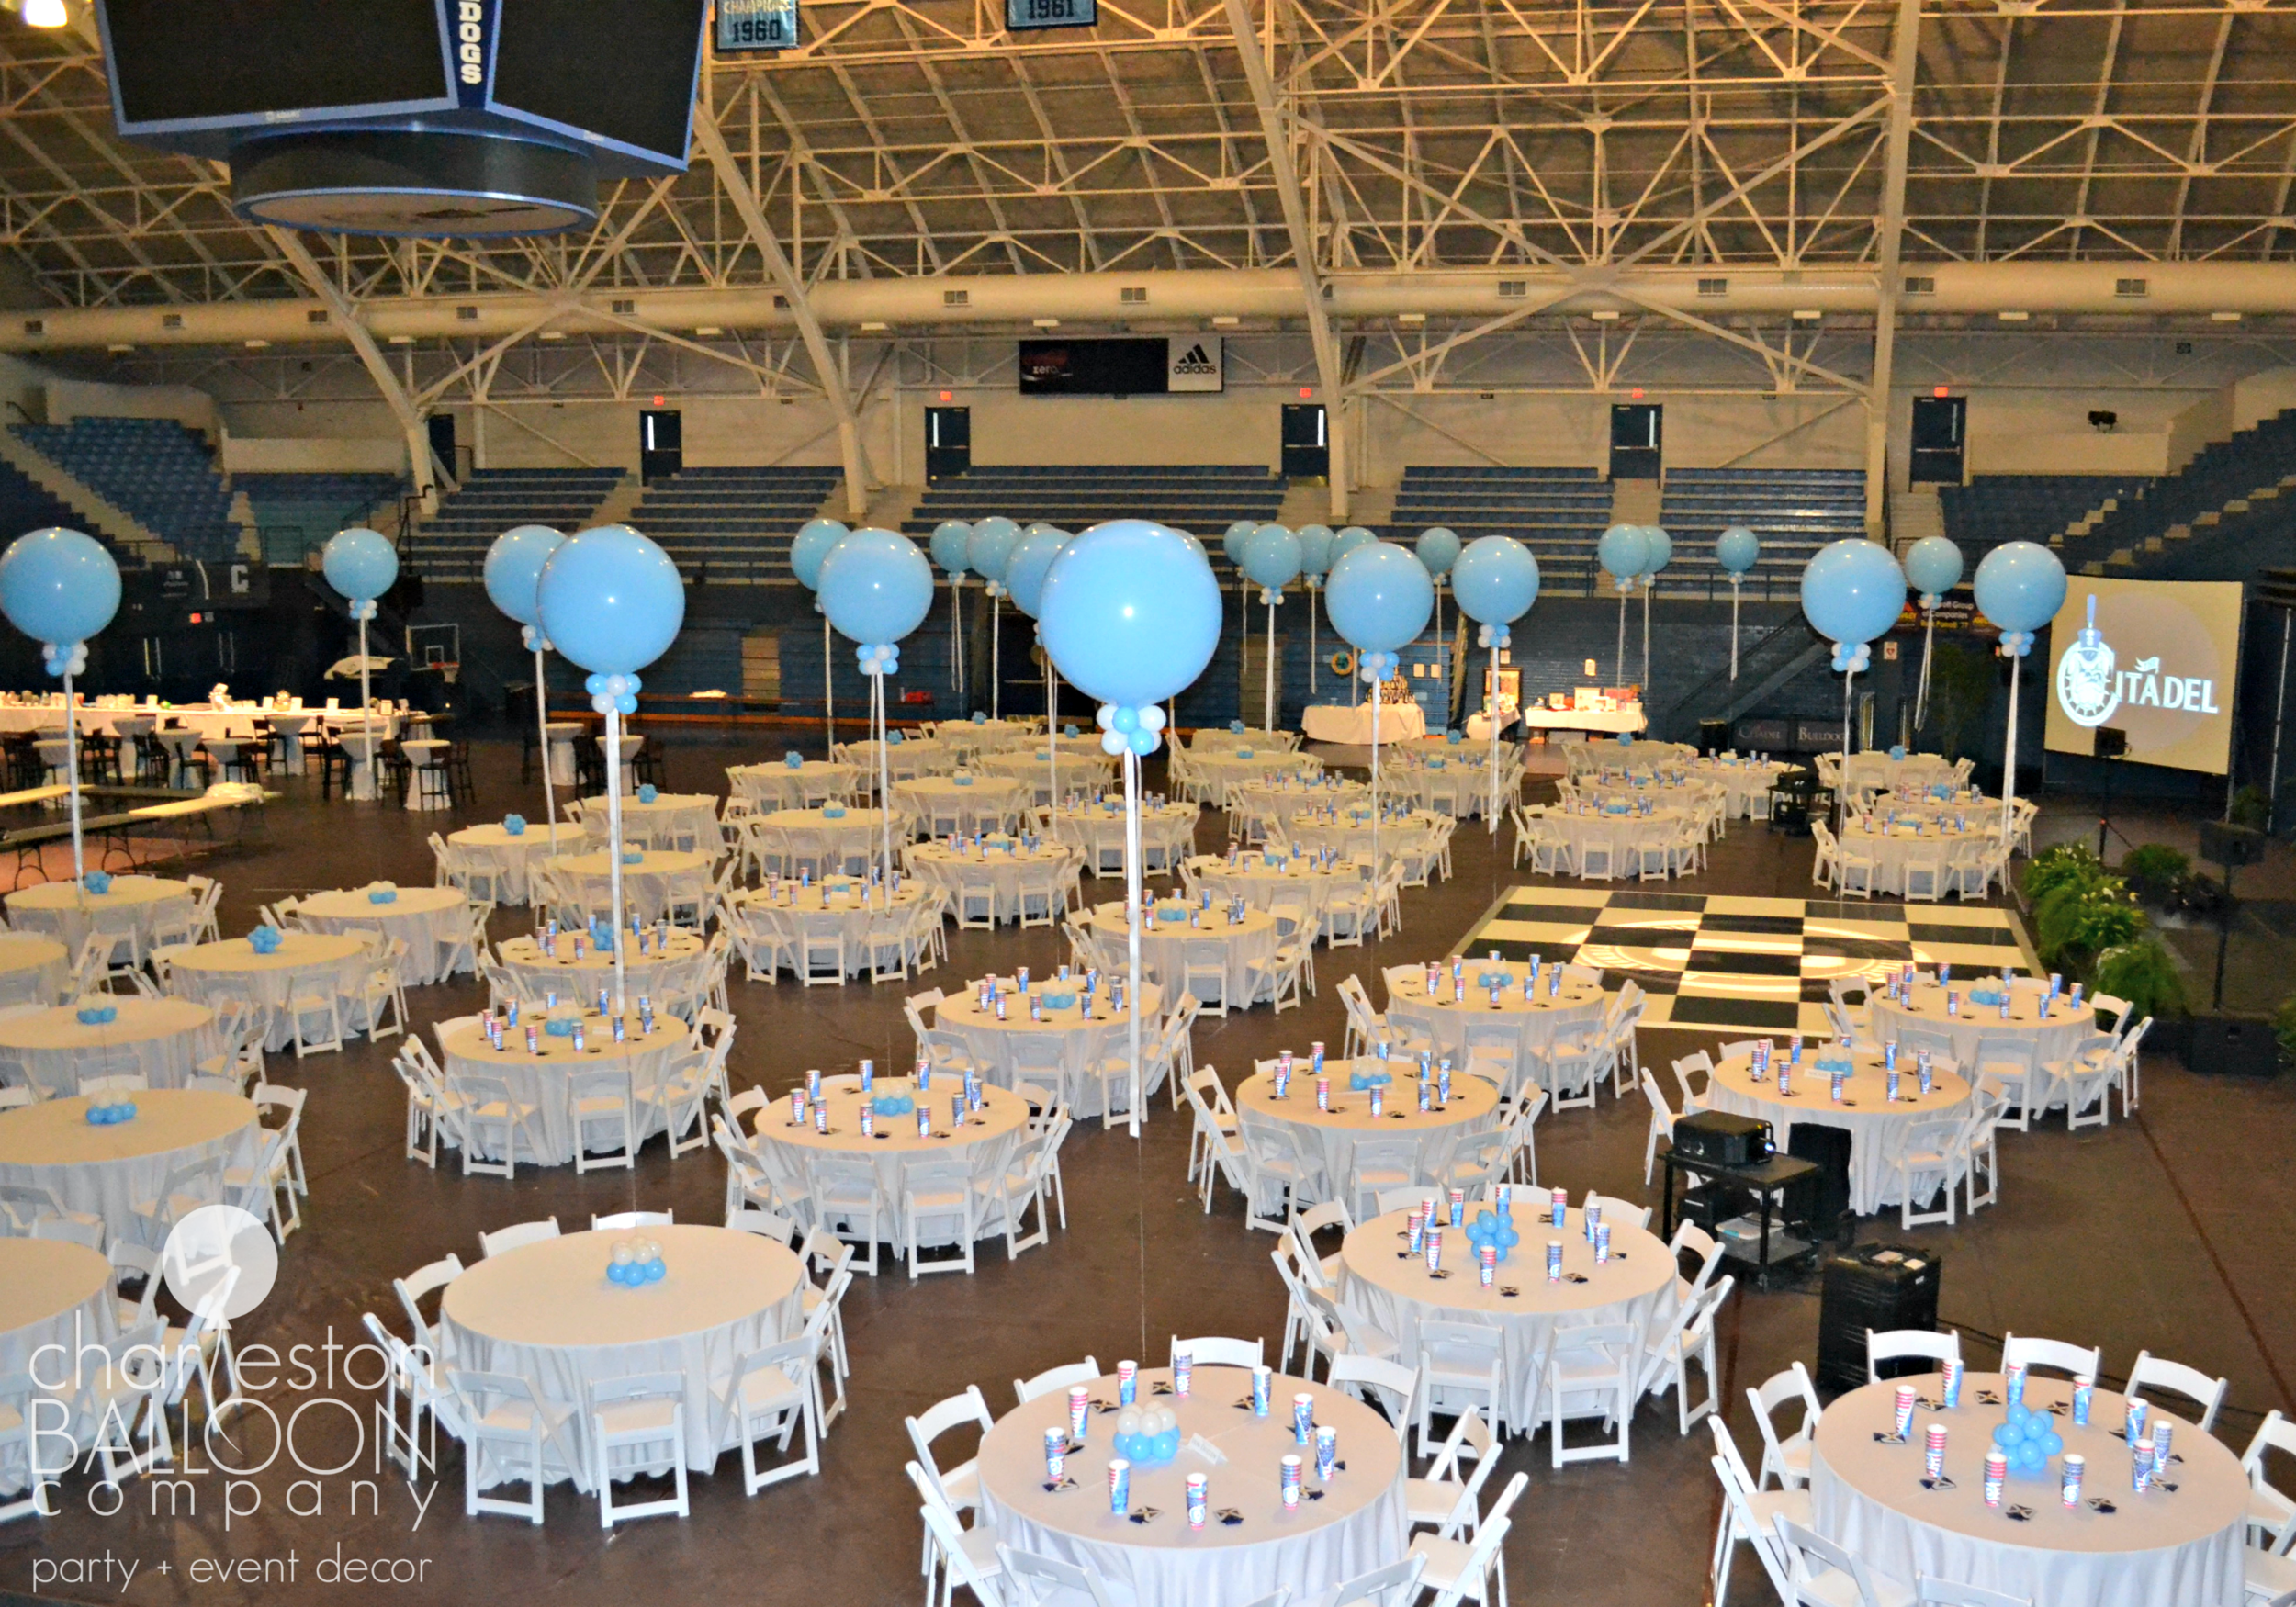 We used large latex balloons as table centerpieces.